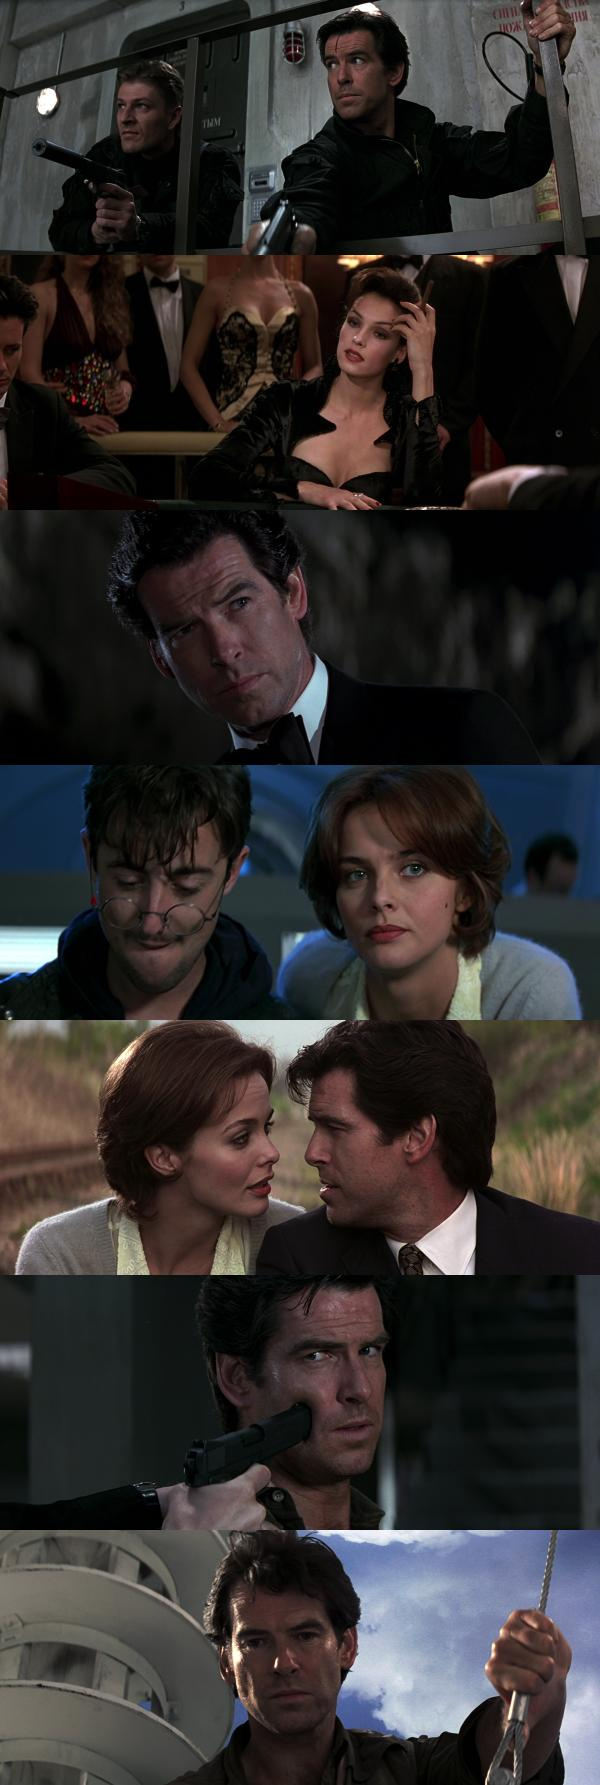 http://watershade.net/public/goldeneye.jpg